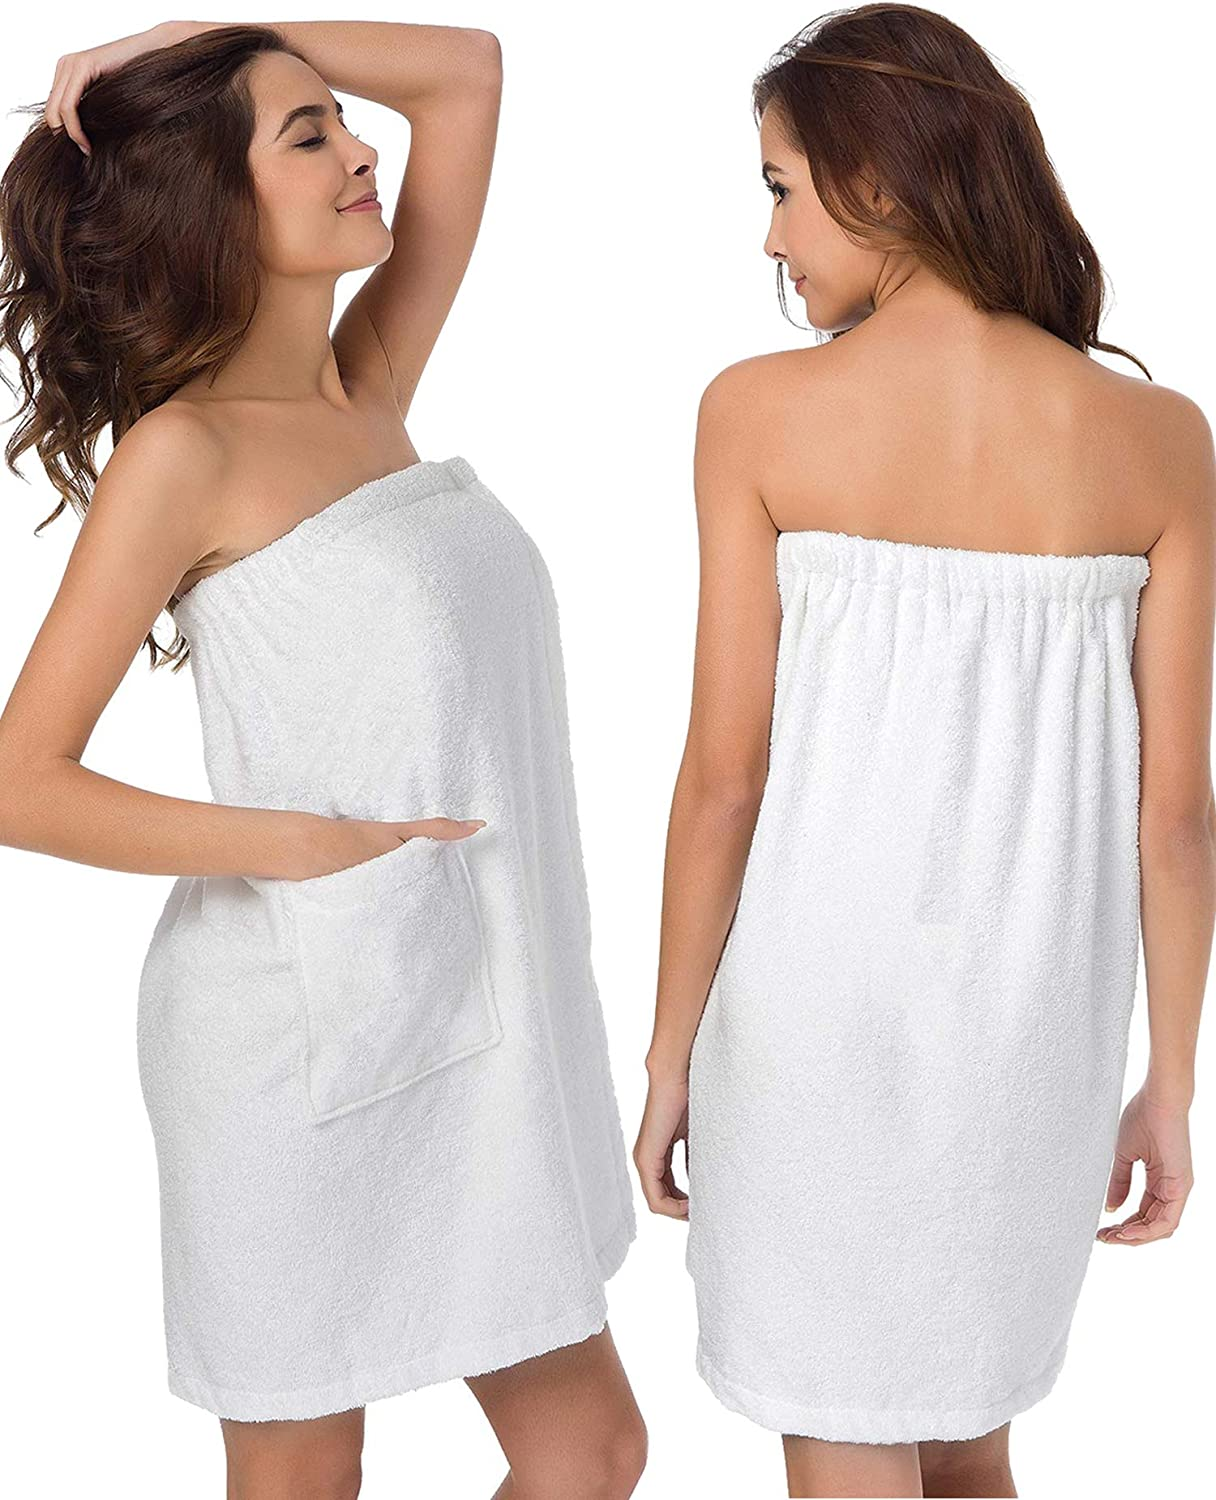 SIORO Towel Wraps for Women Bamboo Cotton Towelling Spa Wraps with Closure and Pocket Bath and Shower Robe Dress